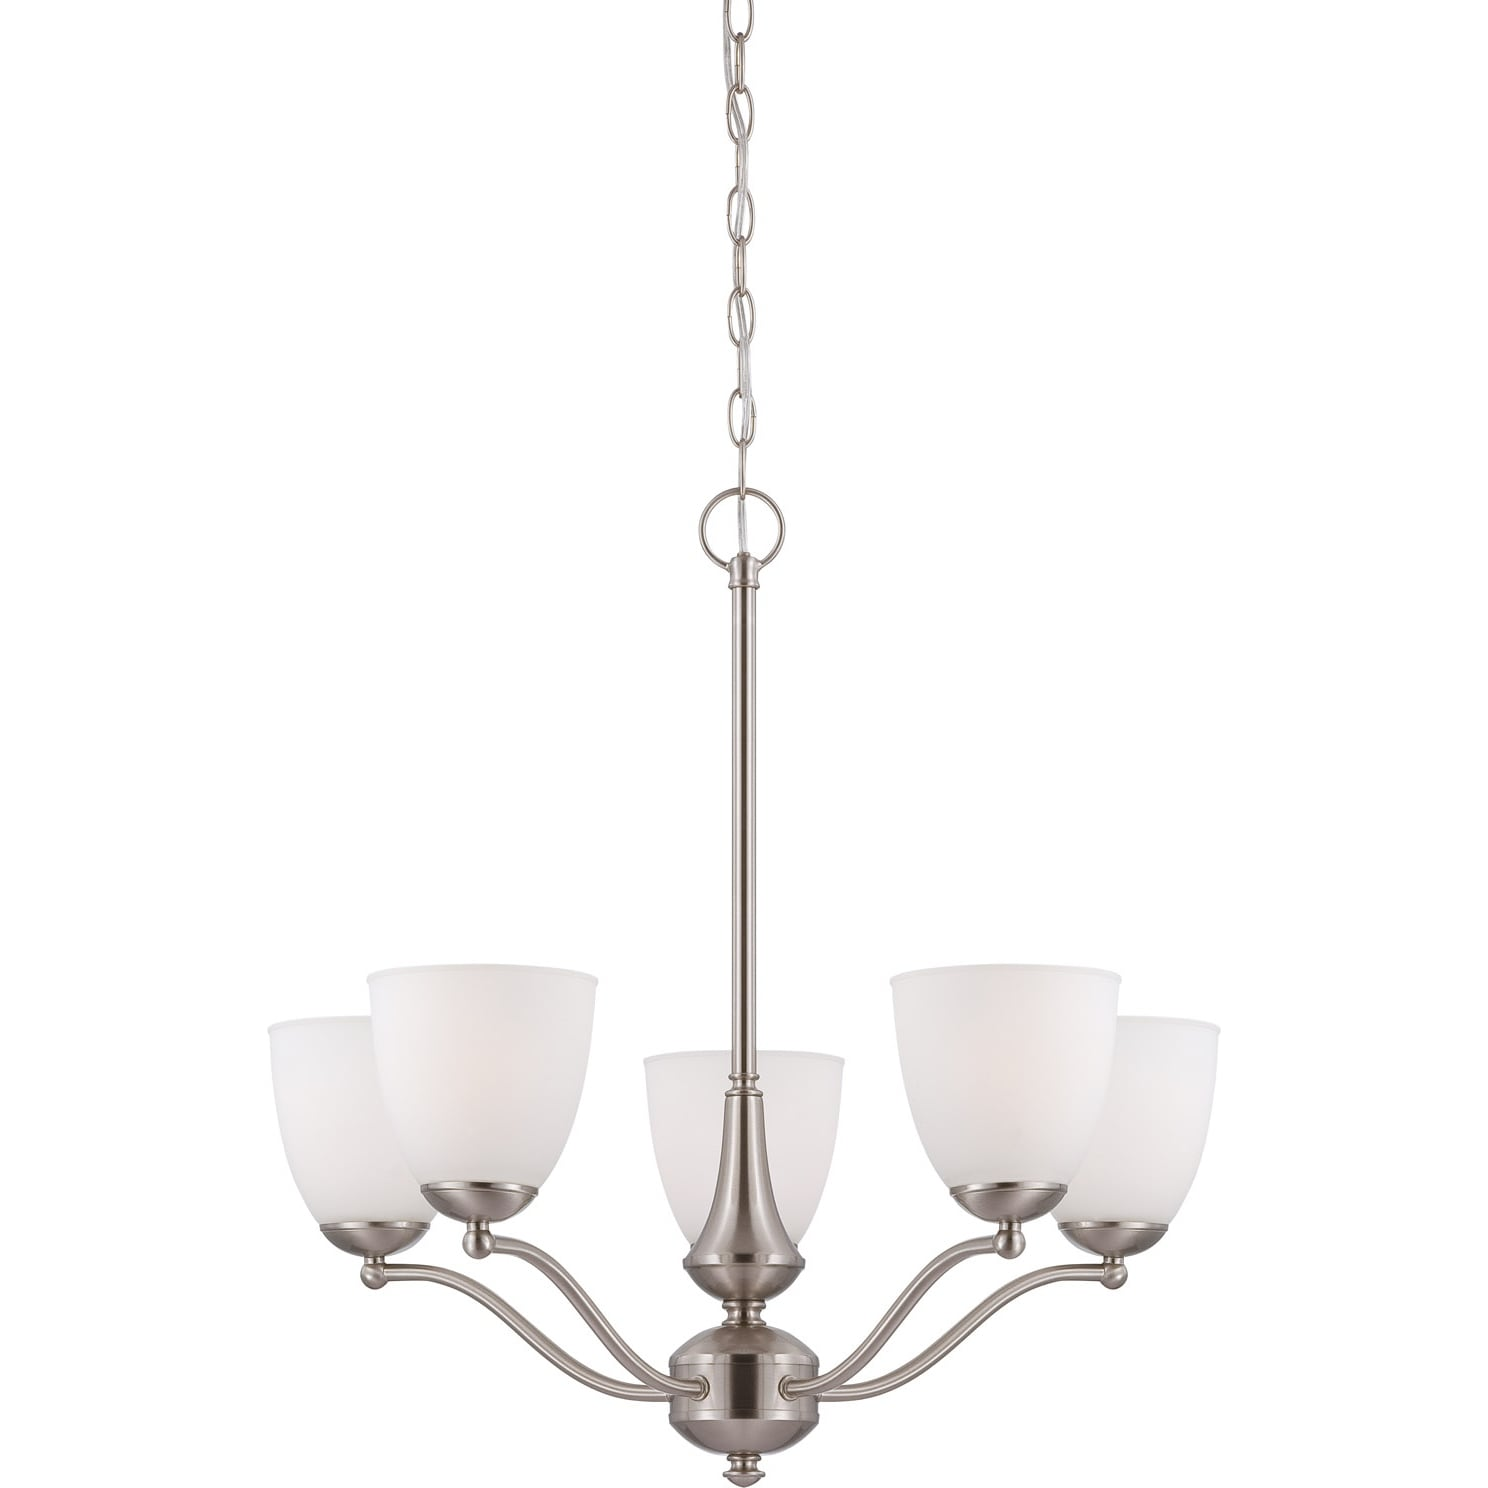 Nuvo 'Patton' 5-light Brushed Nickel Fluorescent Chandelier